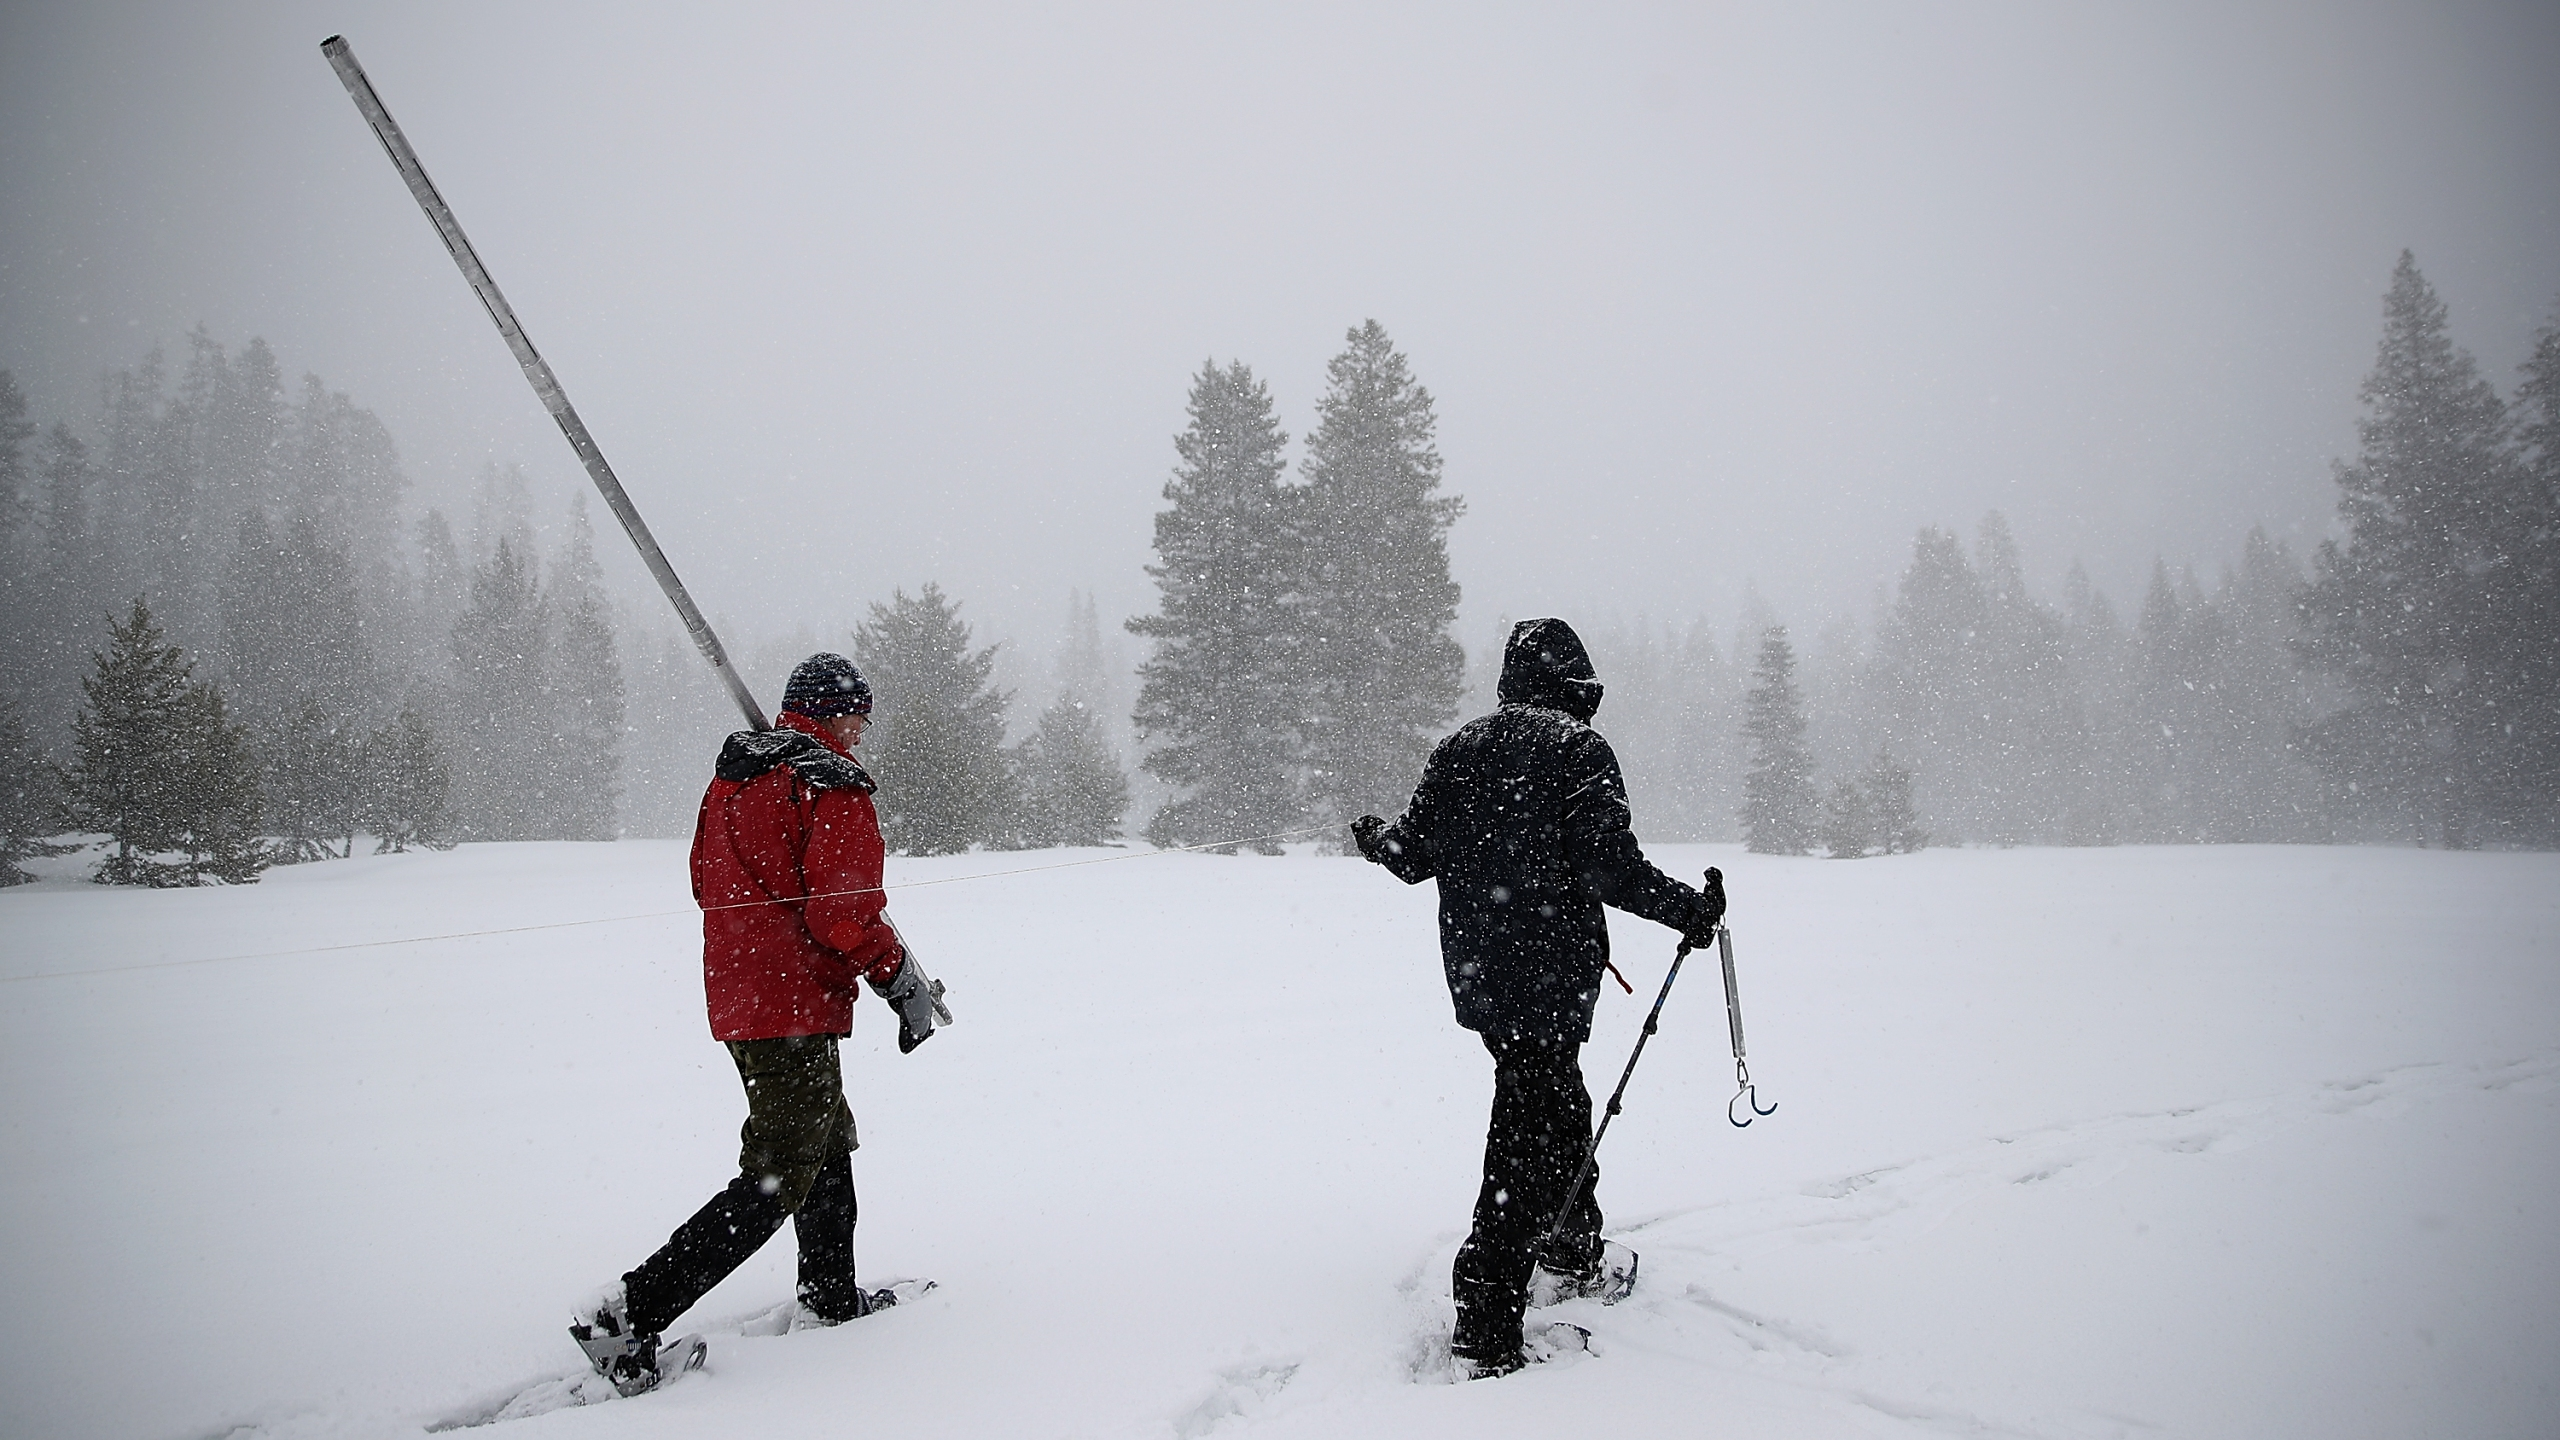 Nic Enstice, right, and Frank Gehrke, left, Chief of the California Cooperative Snow Surveys Program for the Department of Water Resources, walk through a snow covered field to take a sample of the Sierra snowpack on March 30, 2017 near Twin Bridges. (Credit: Justin Sullivan/Getty Images)